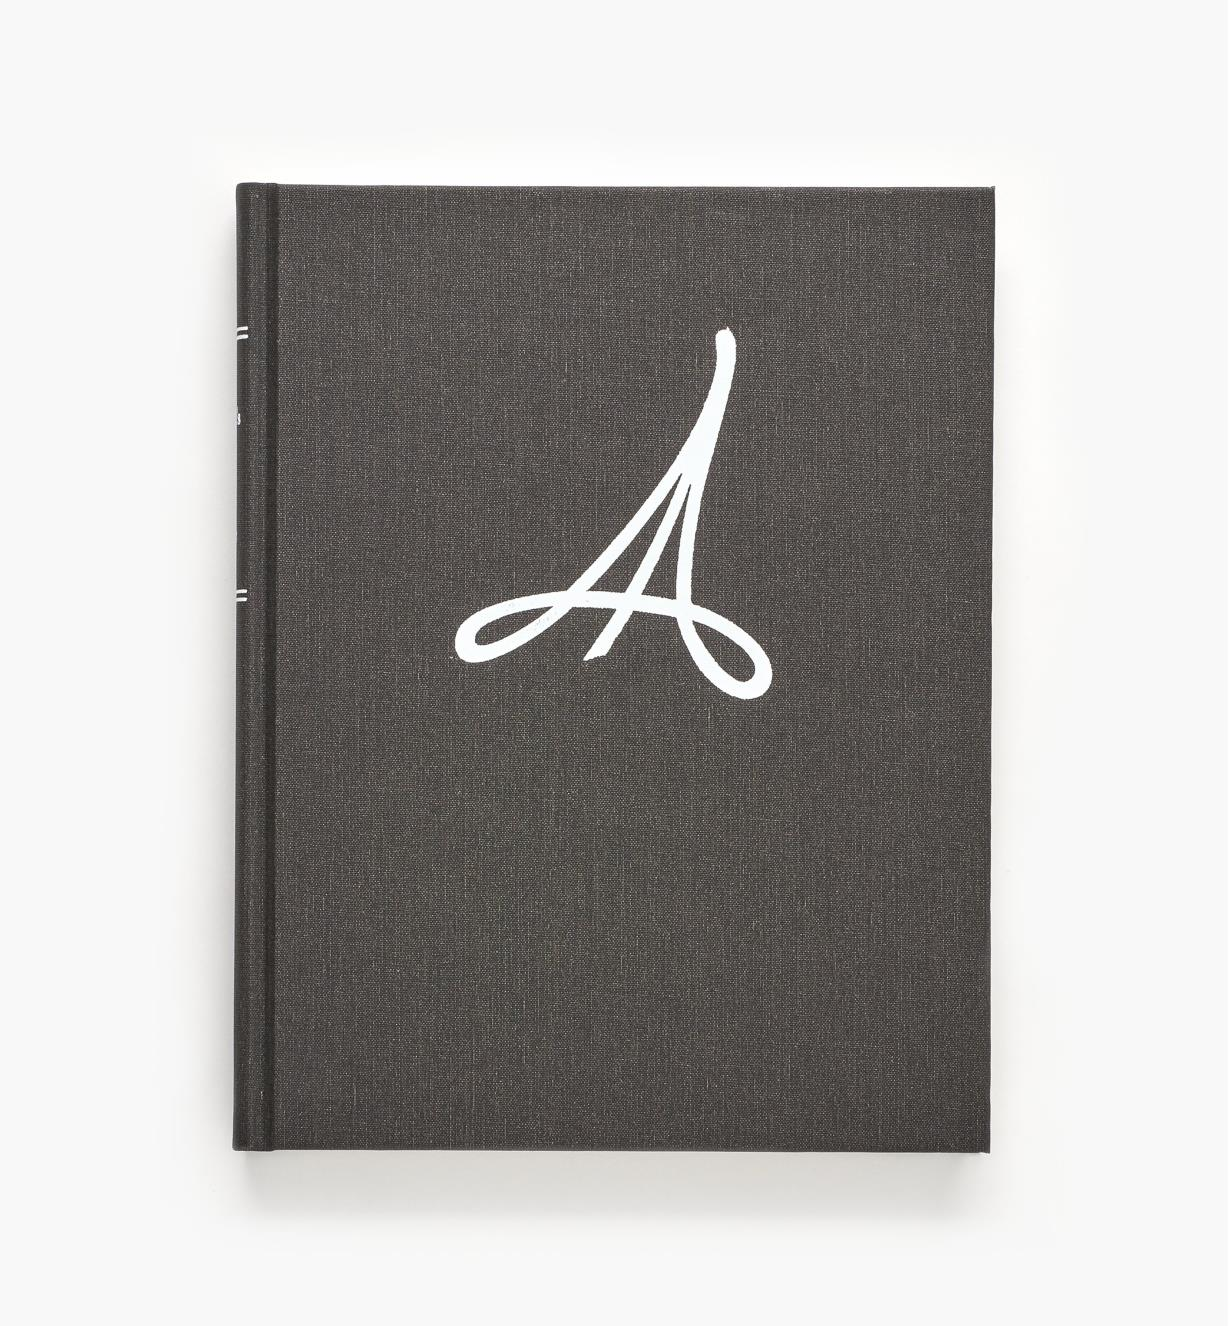 20L0335 - The Anarchist's Design Book